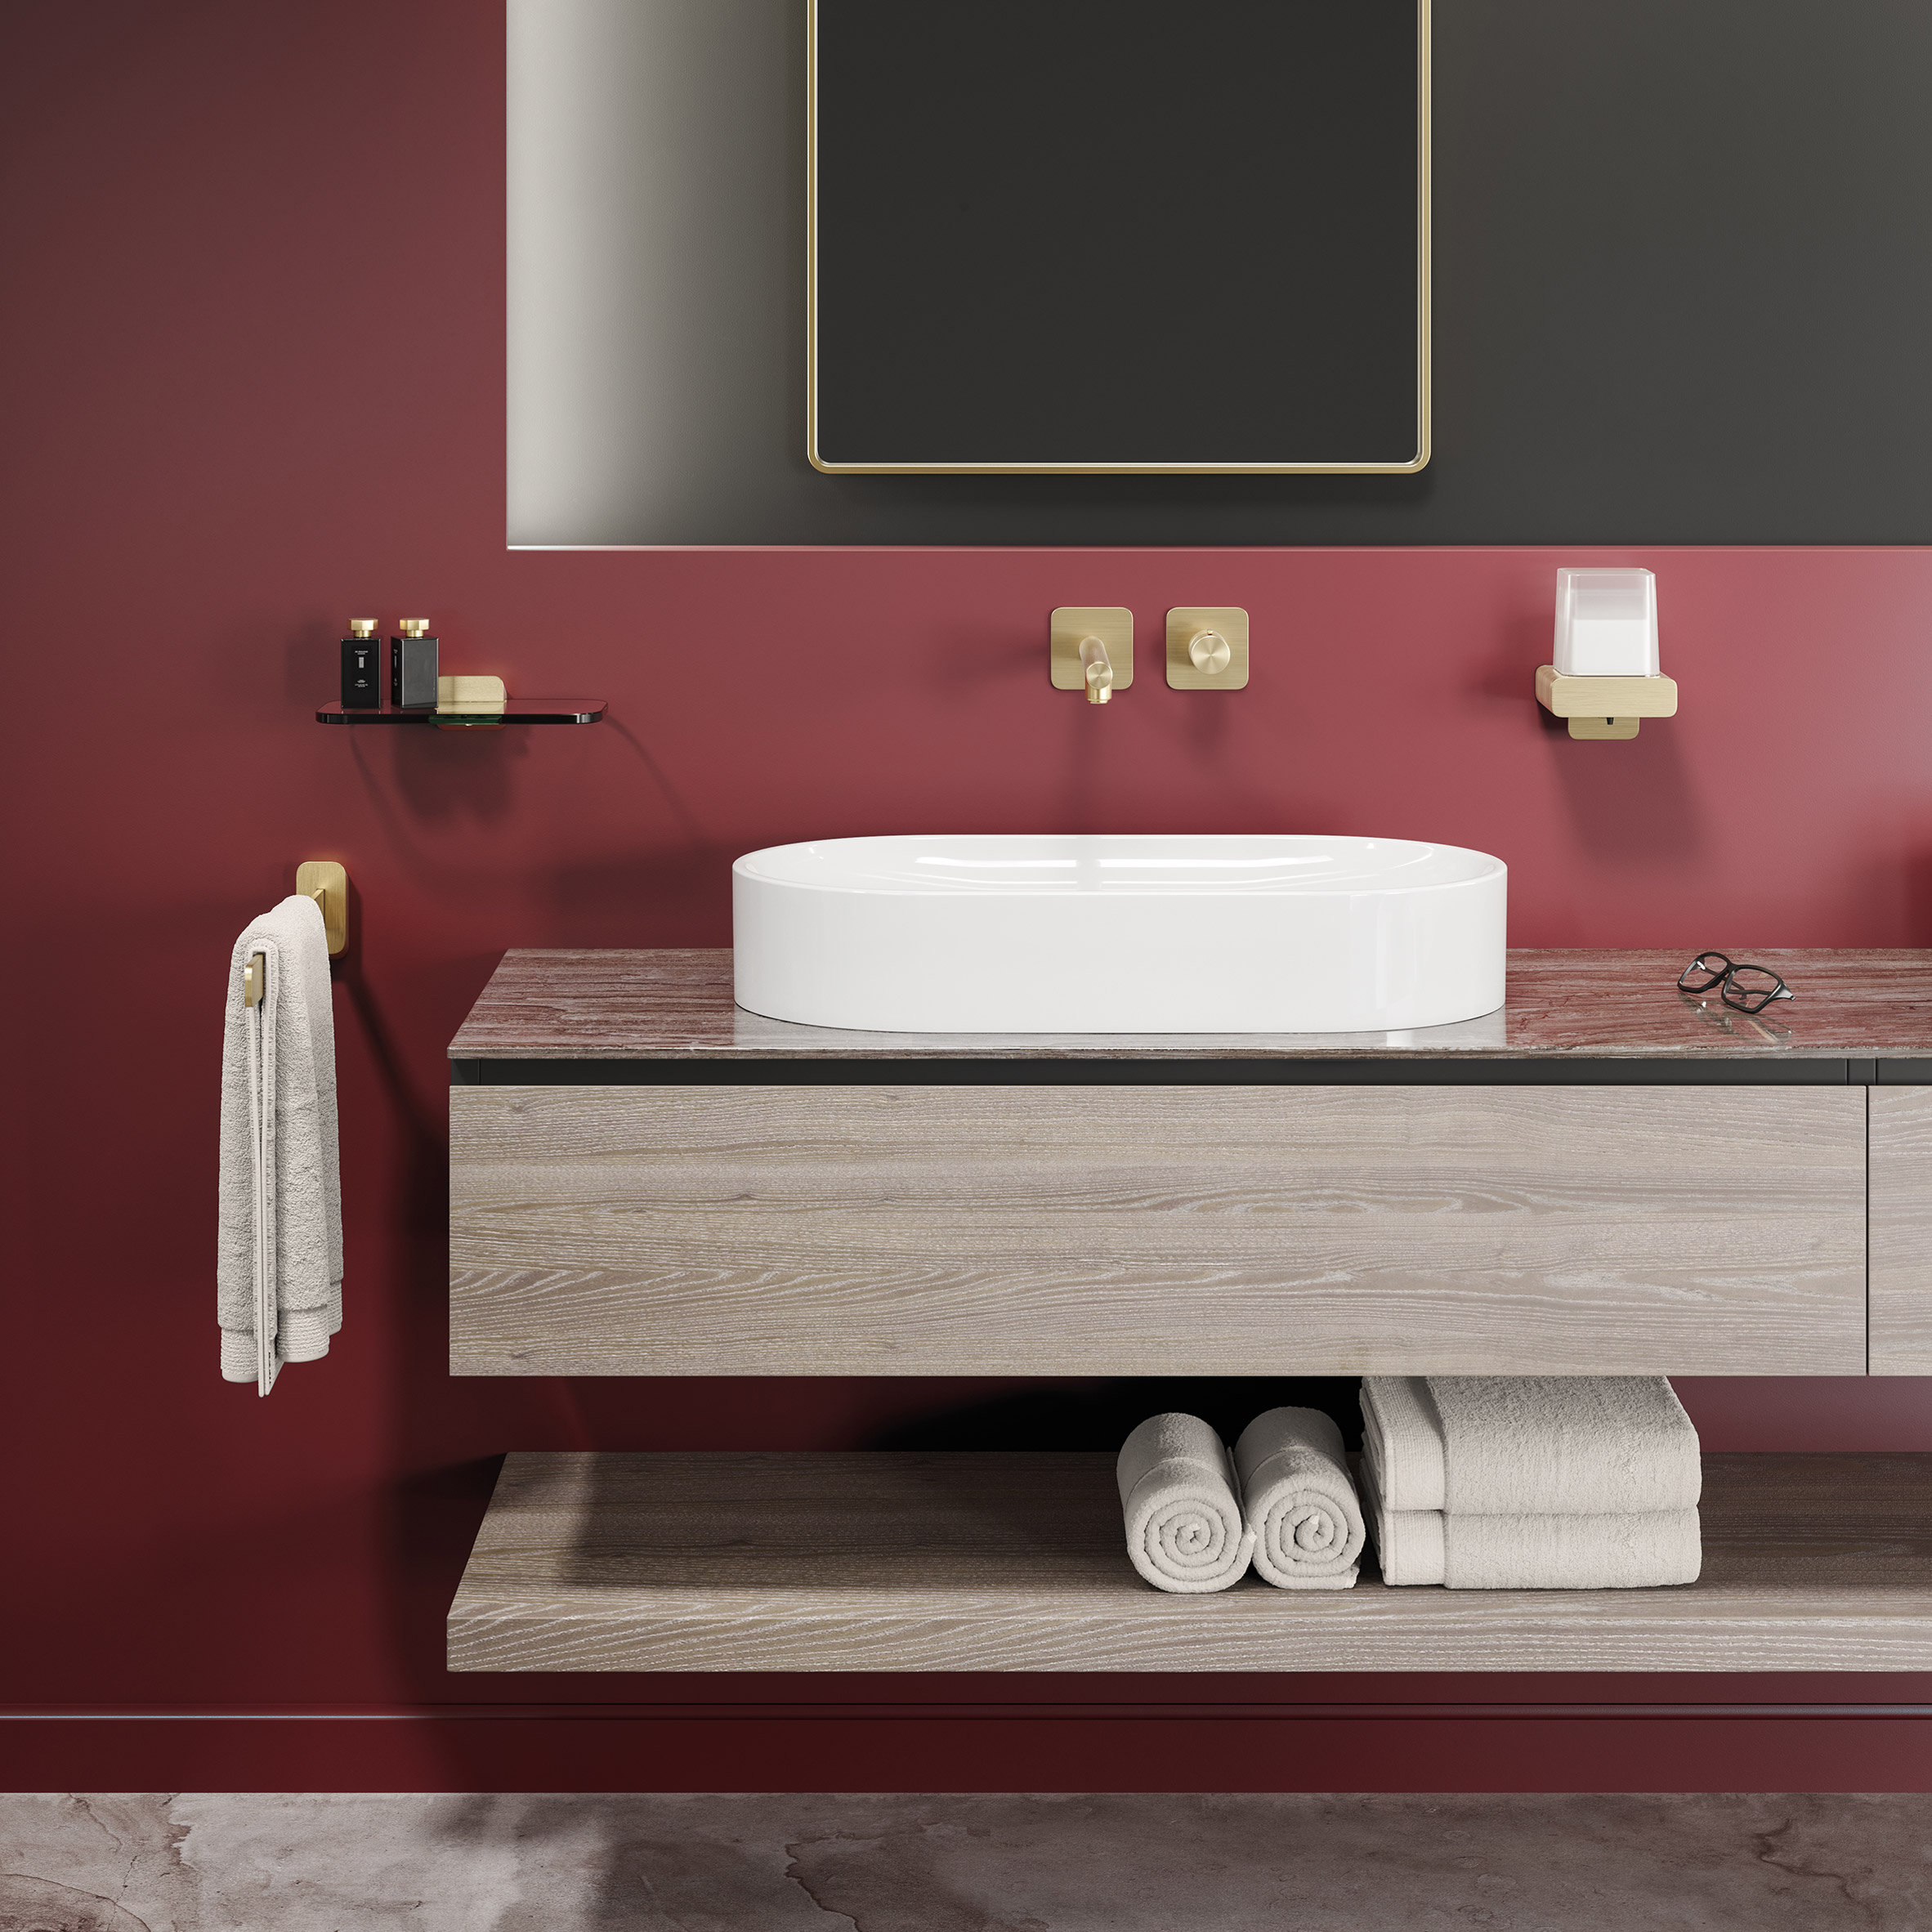 Bathroom with Geesa Shift accessories in brushed gold